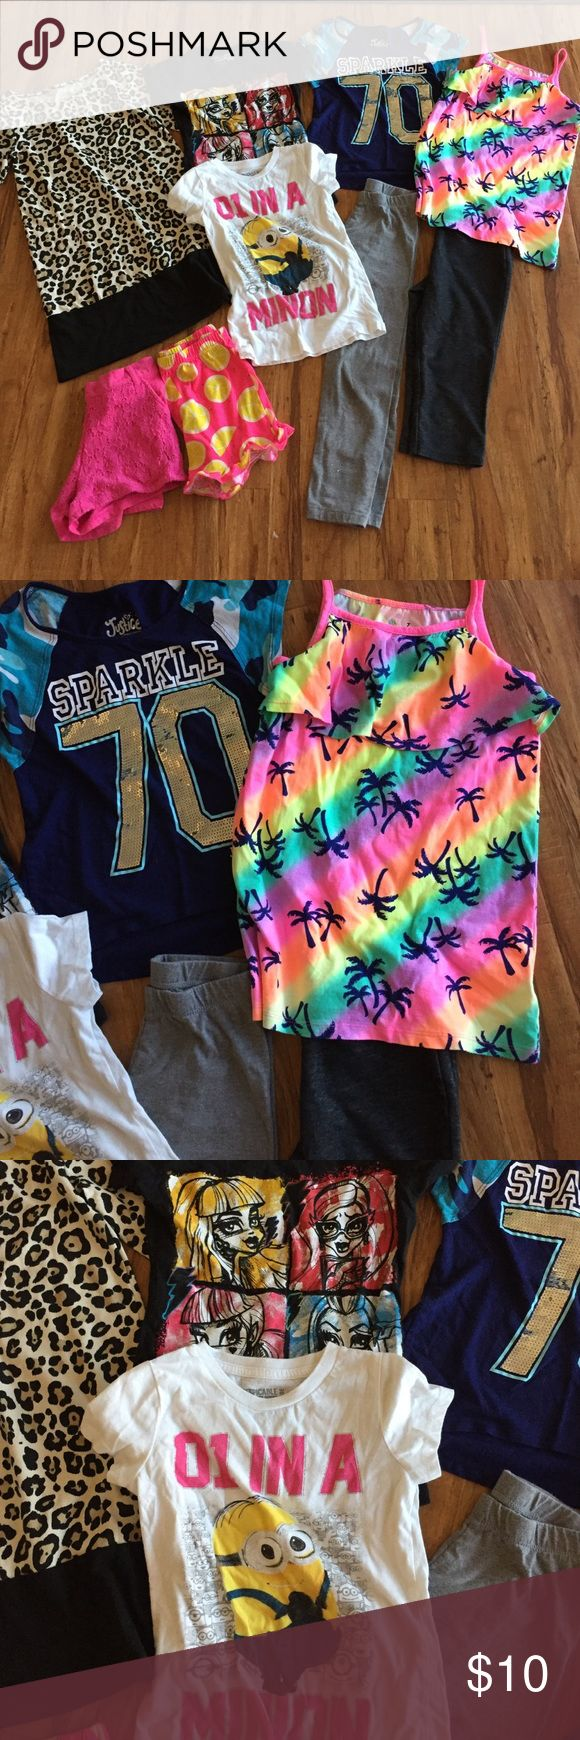 Girls 9 piece lot! 🌟 Girls size 7/8. Includes animal print 3/4 sleeve dress, 2 pair shorts, 2 leggings, 2 t-shirts, rainbow palm tree top (never worn) and short sleeve Sparkle top from Justice! Justice Matching Sets